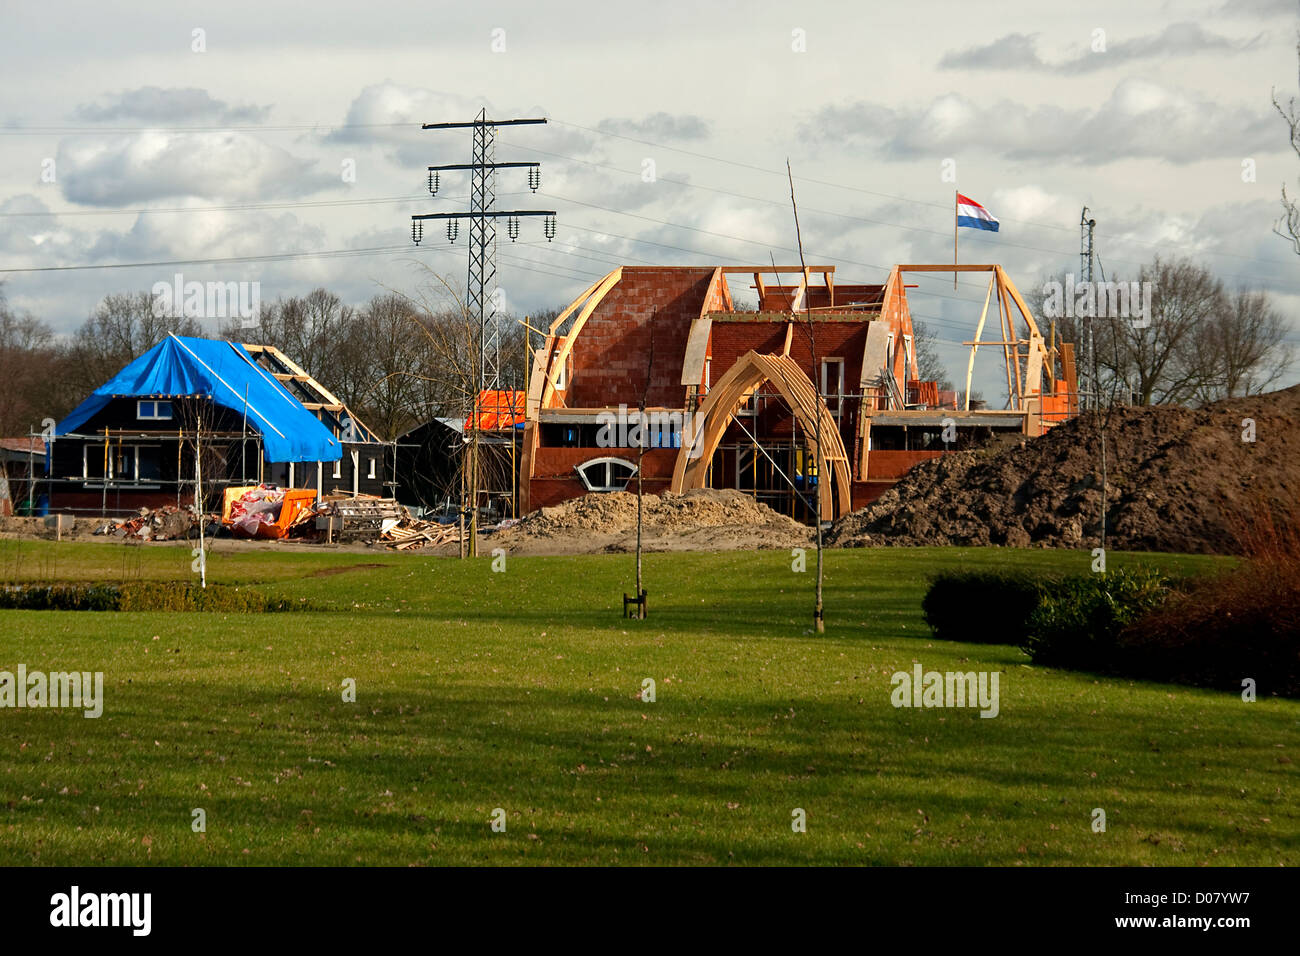 Building house and reached the top, put a flag on it, Dutch habit. - Stock Image